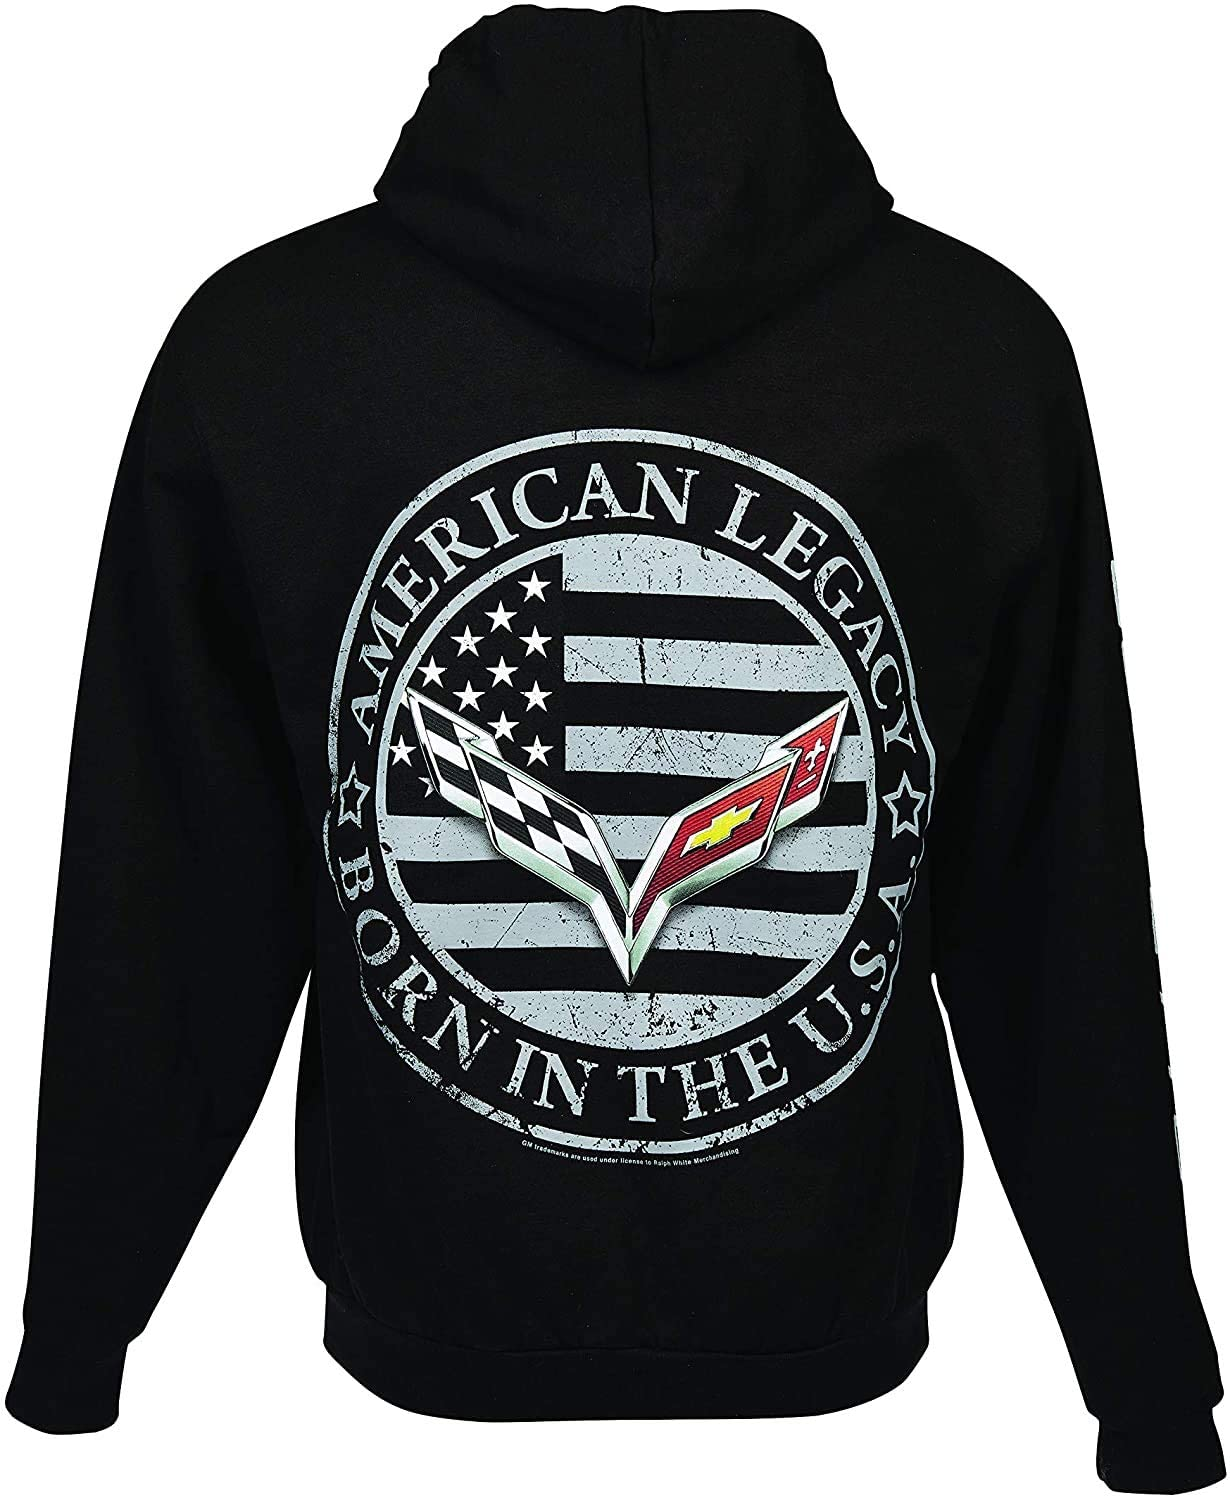 C7 Corvette Born in The USA American Legacy Zip Up Hoodie Jacket - Black (XX-Large)